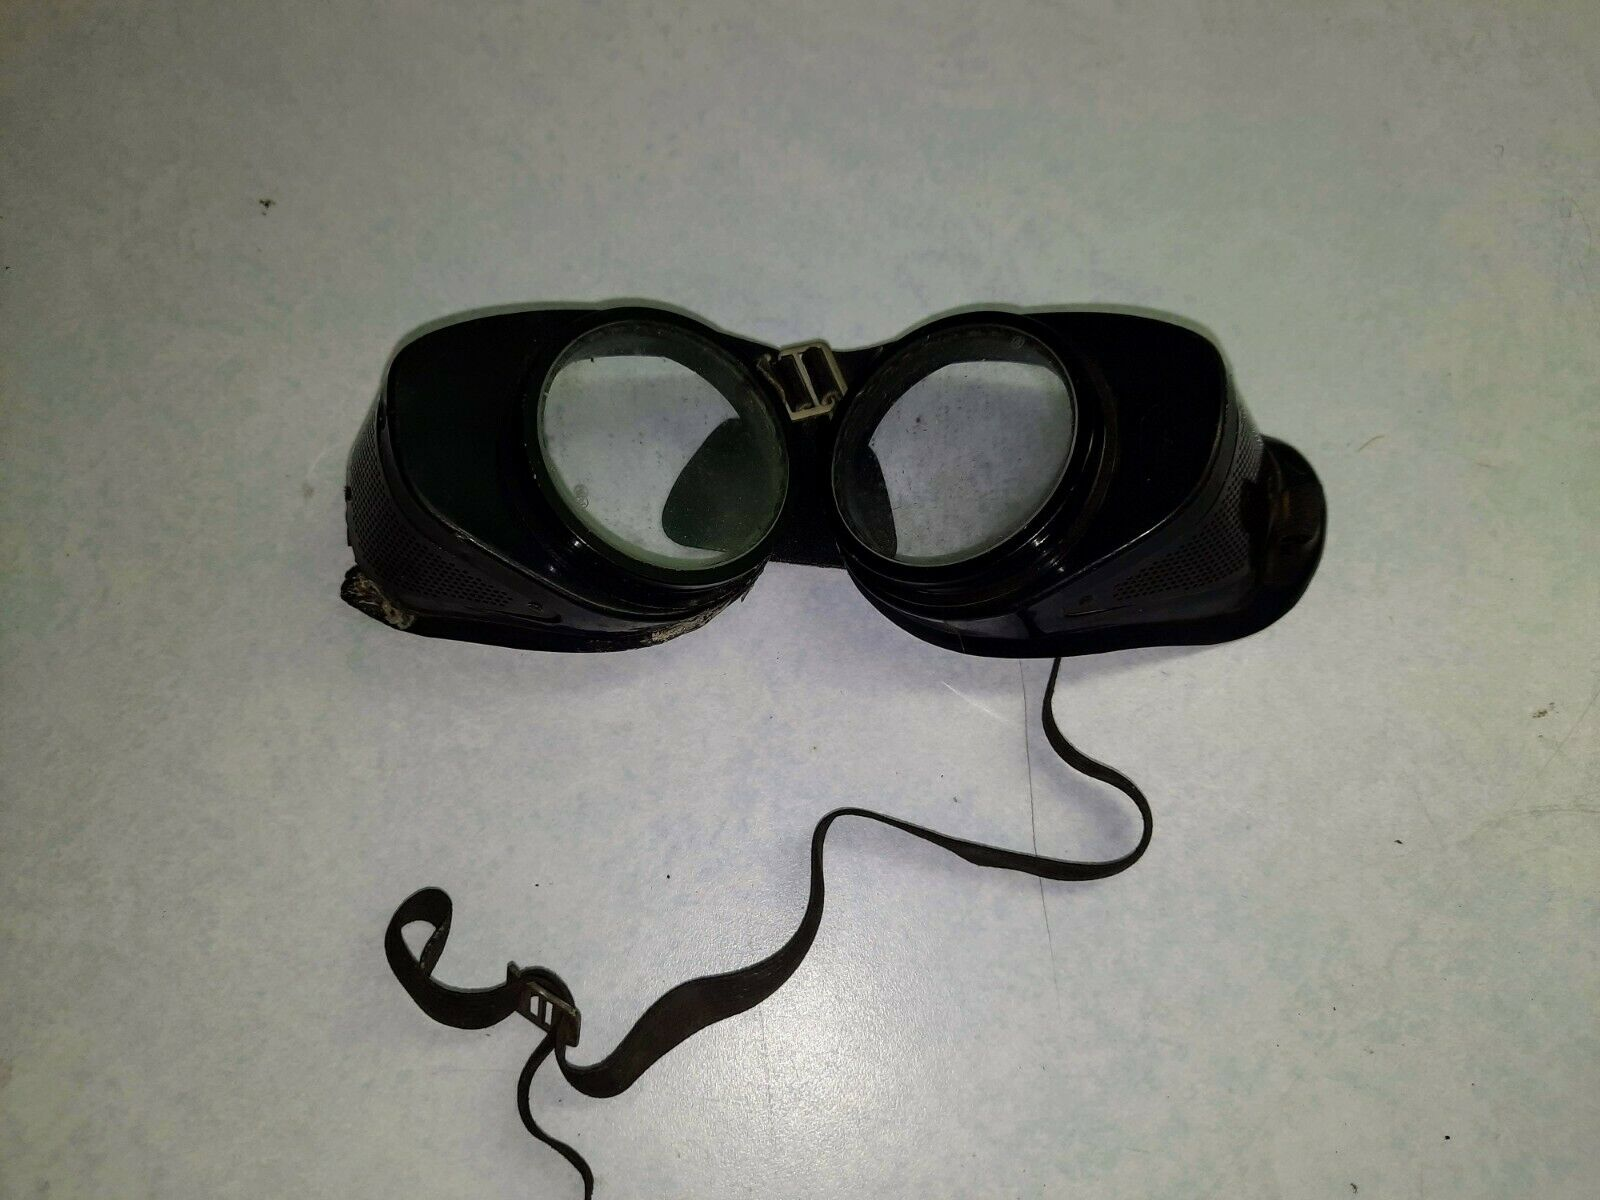 Vintage COVERGLAS Optical safety glasses steampunk style NEED REPAIR